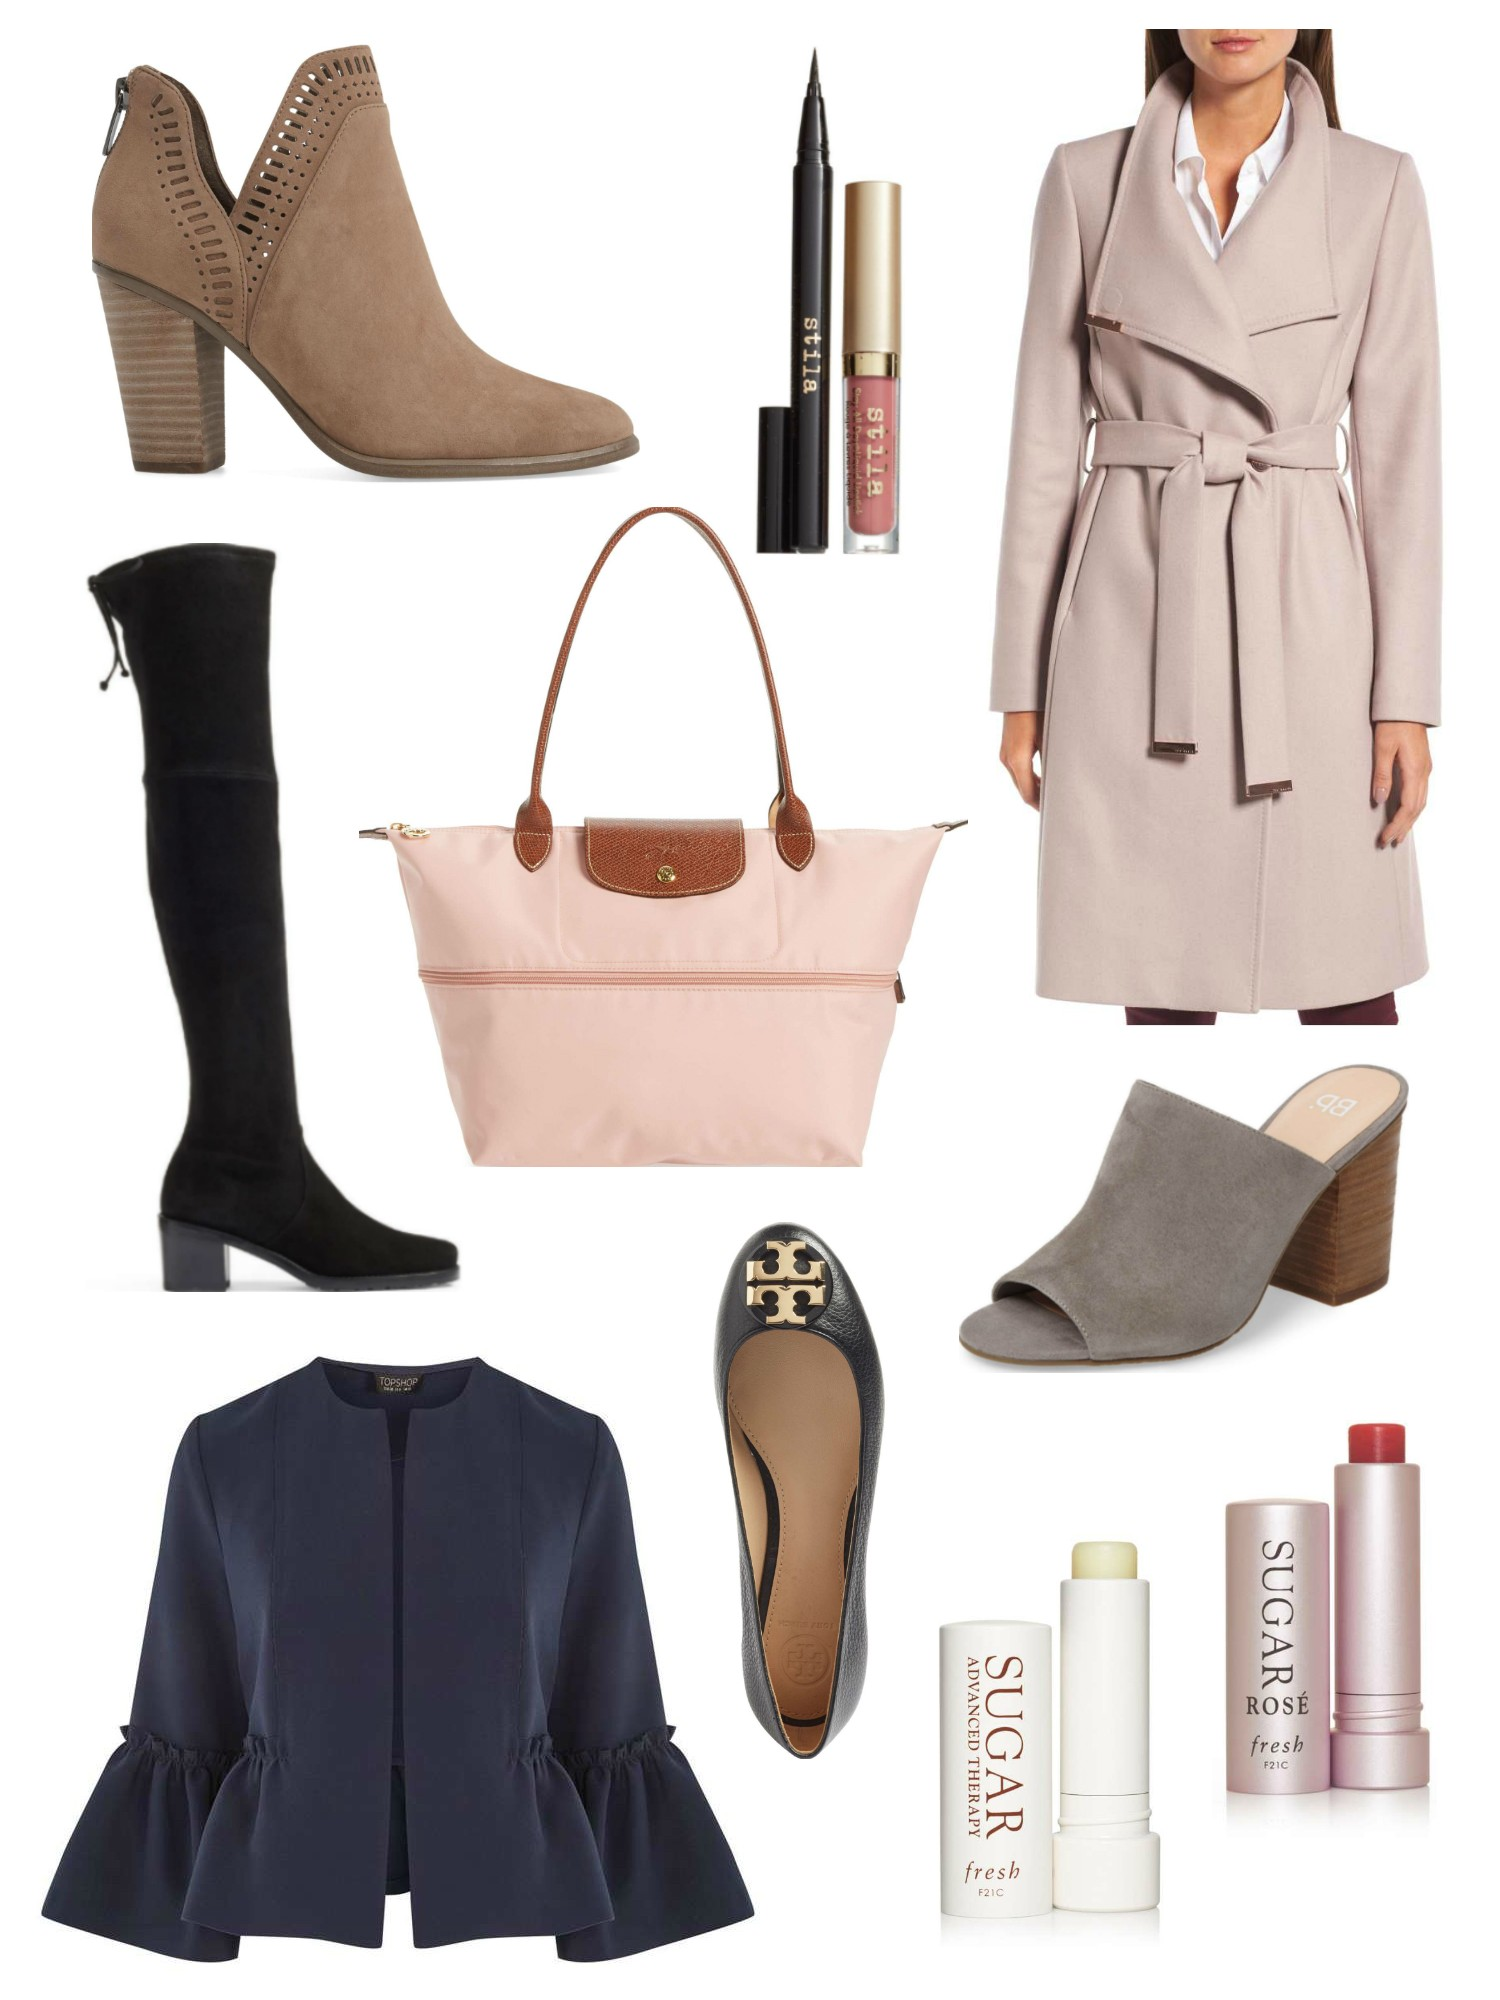 f059df20559 Nordstrom Anniversary Sale Early Access 2017  petite-friendly picks ...